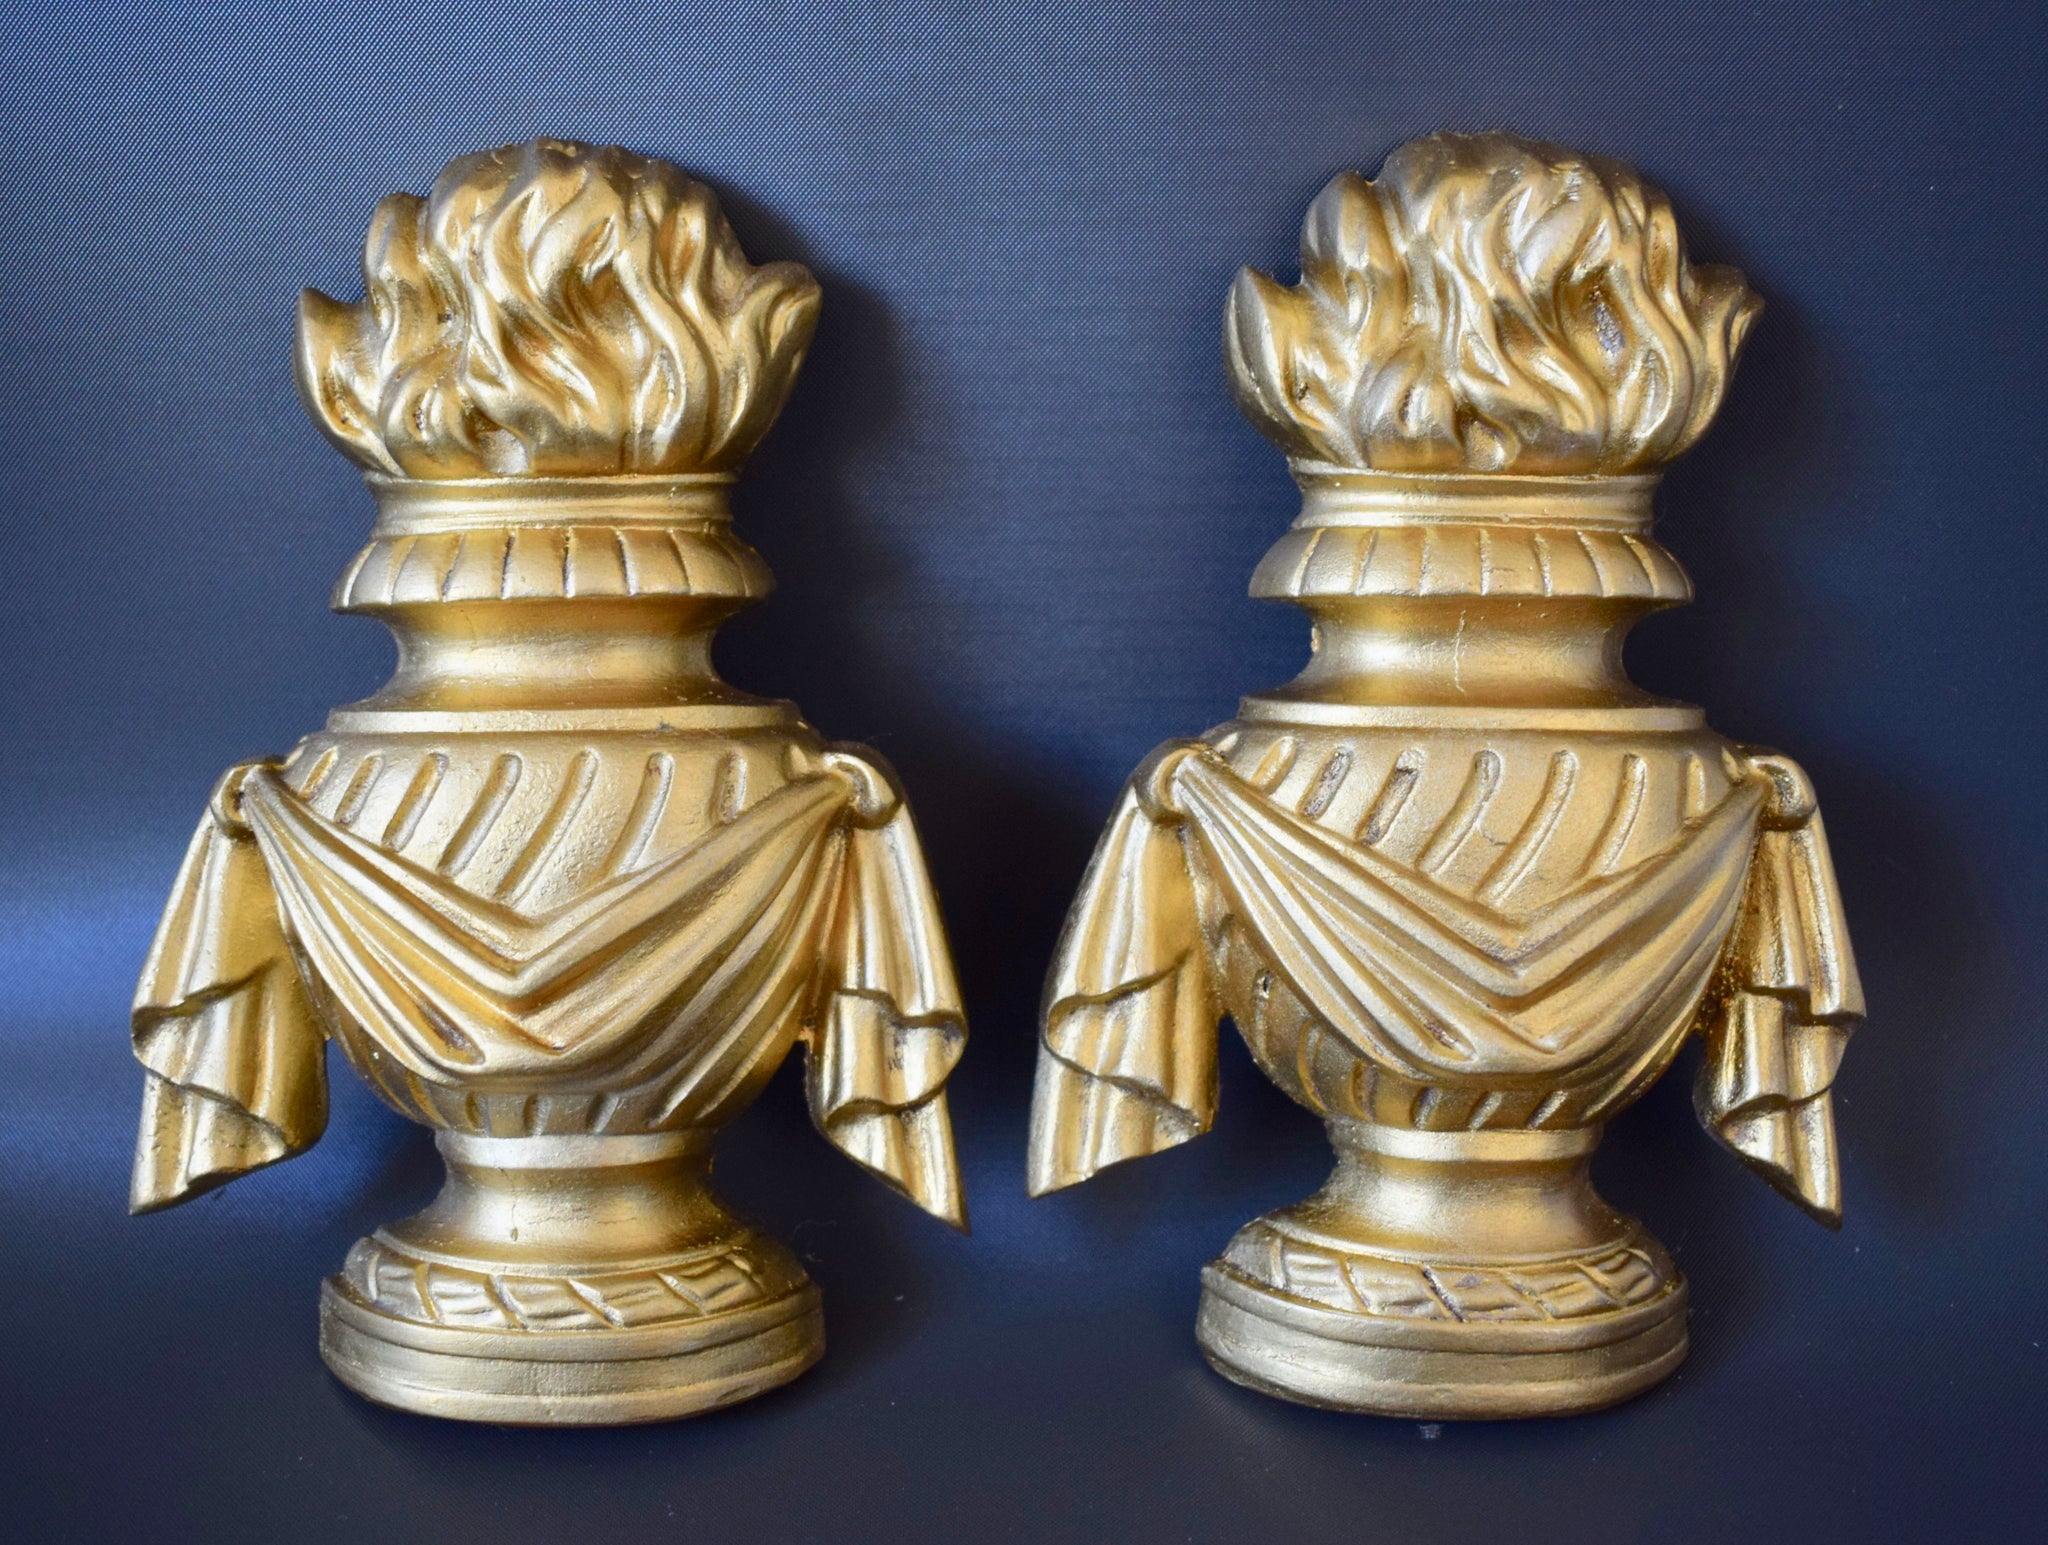 Fire Bowl Pediment - Charmantiques